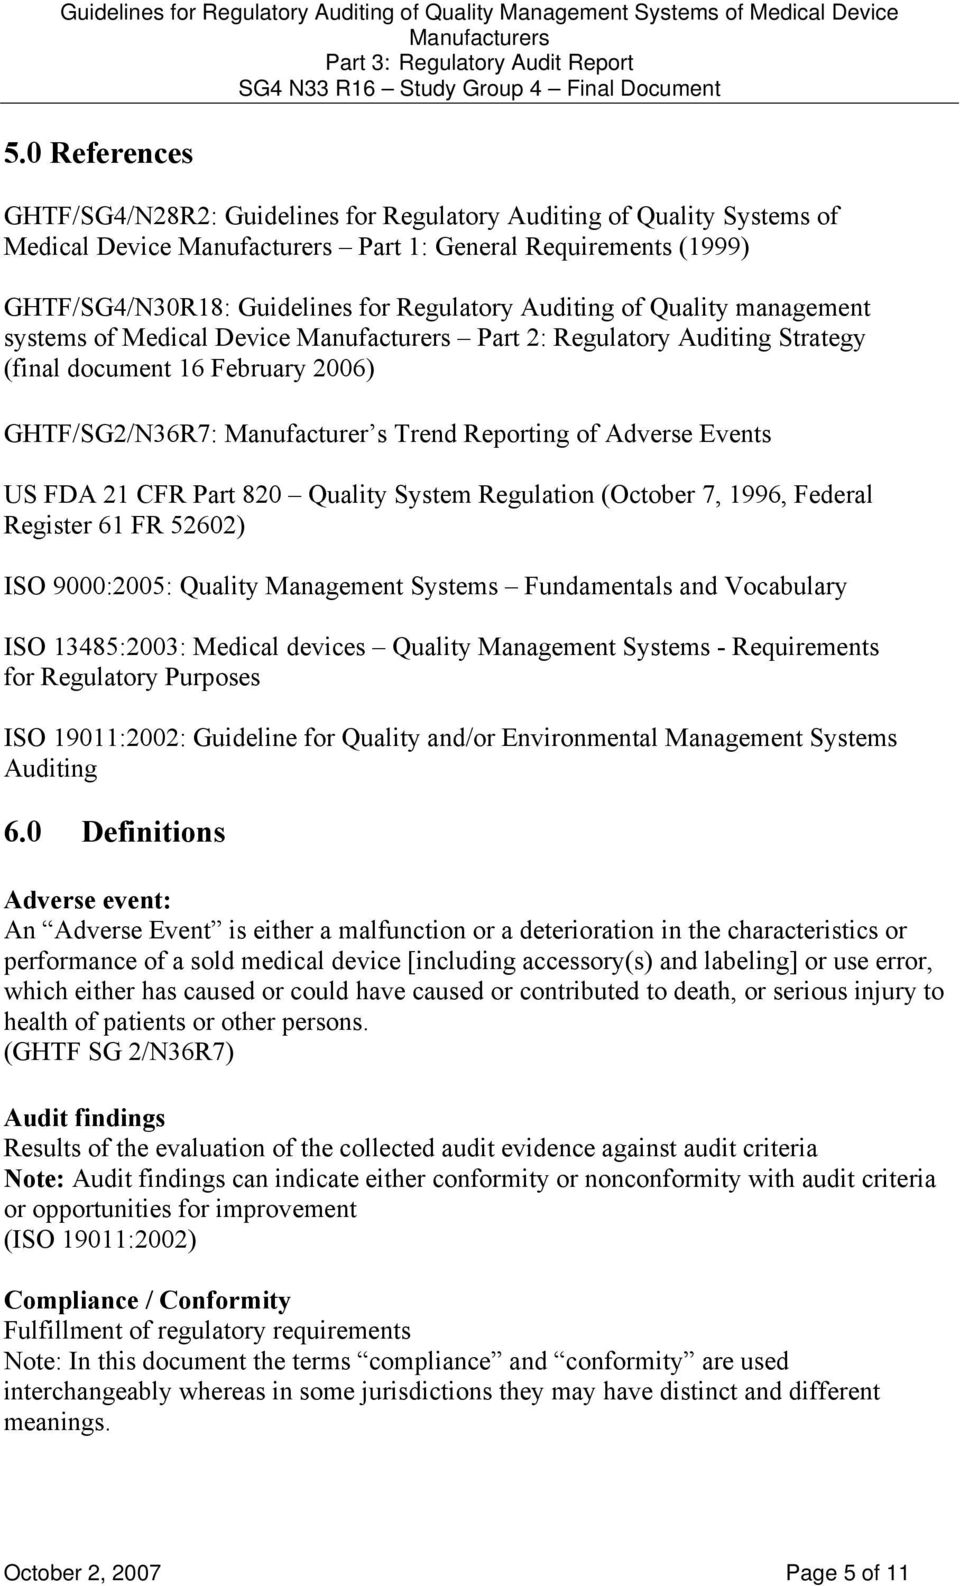 820 Quality System Regulation (October 7, 1996, Federal Register 61 FR 52602) ISO 9000:2005: Quality Management Systems Fundamentals and Vocabulary ISO 13485:2003: Medical devices Quality Management